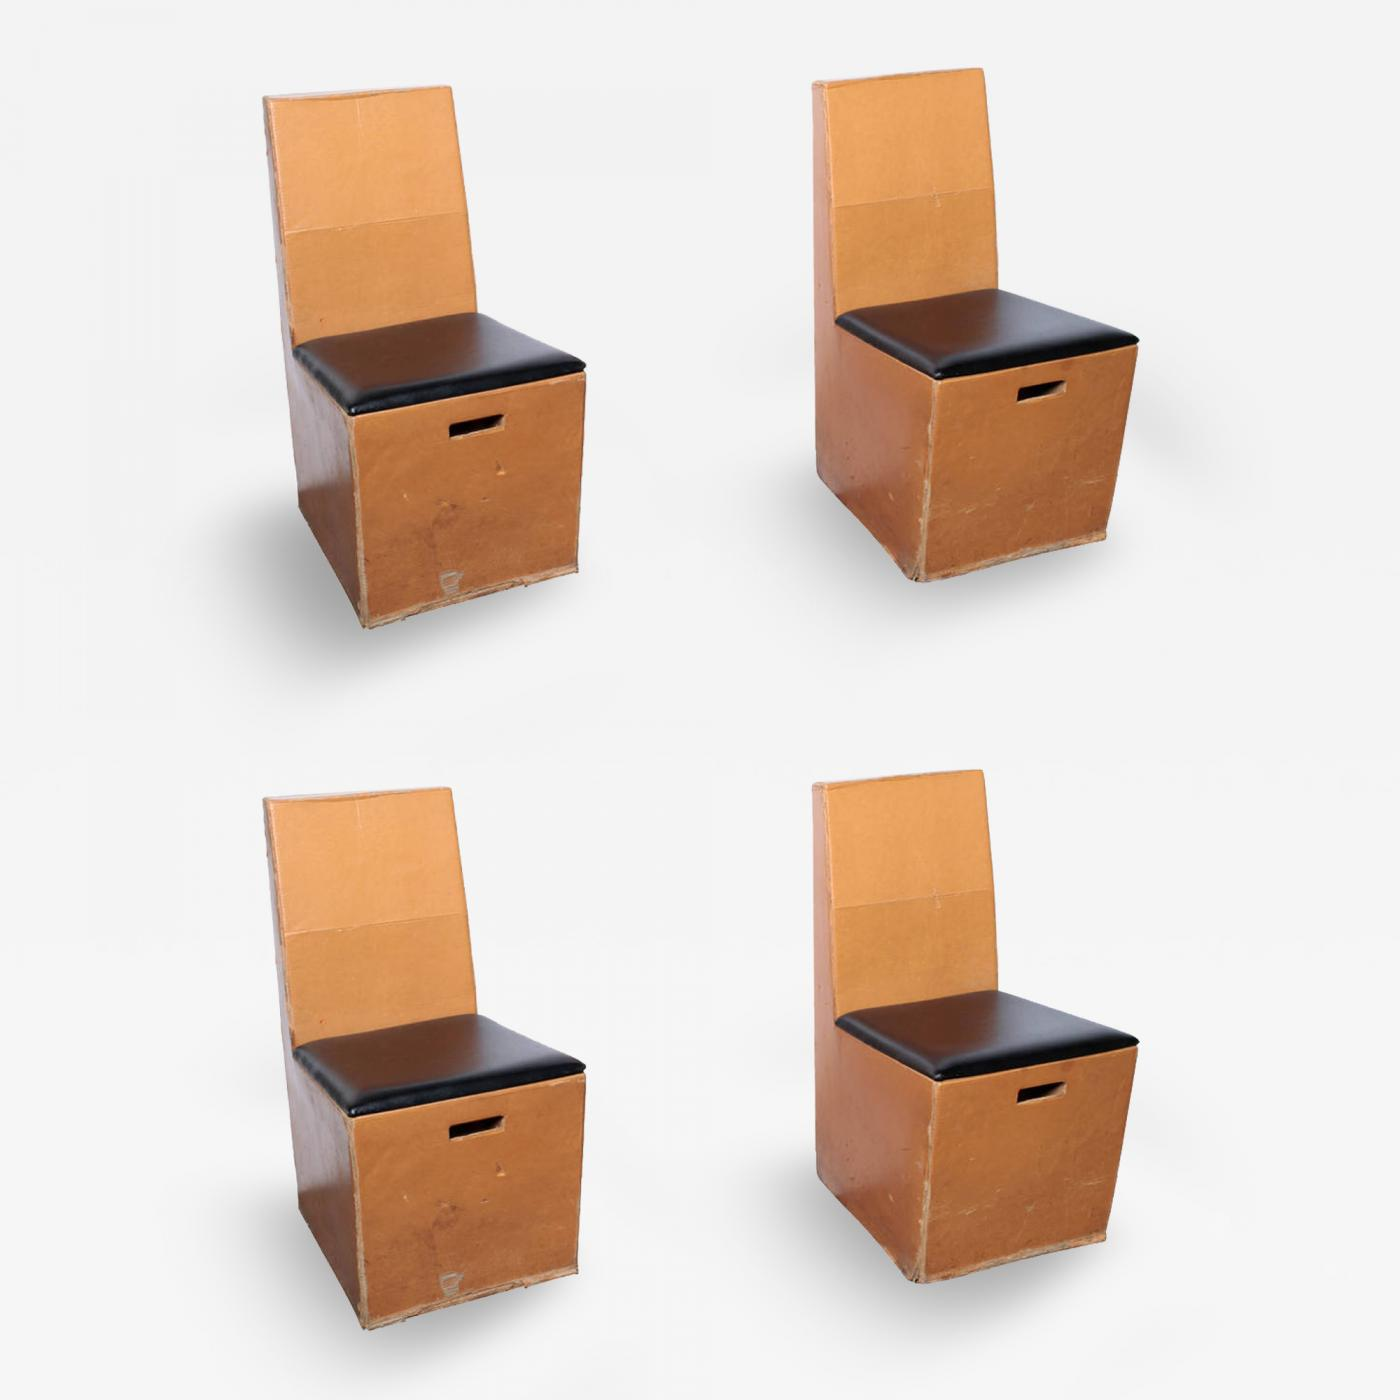 Frank Gehry R Sushi Chairs - Frank gehry furniture